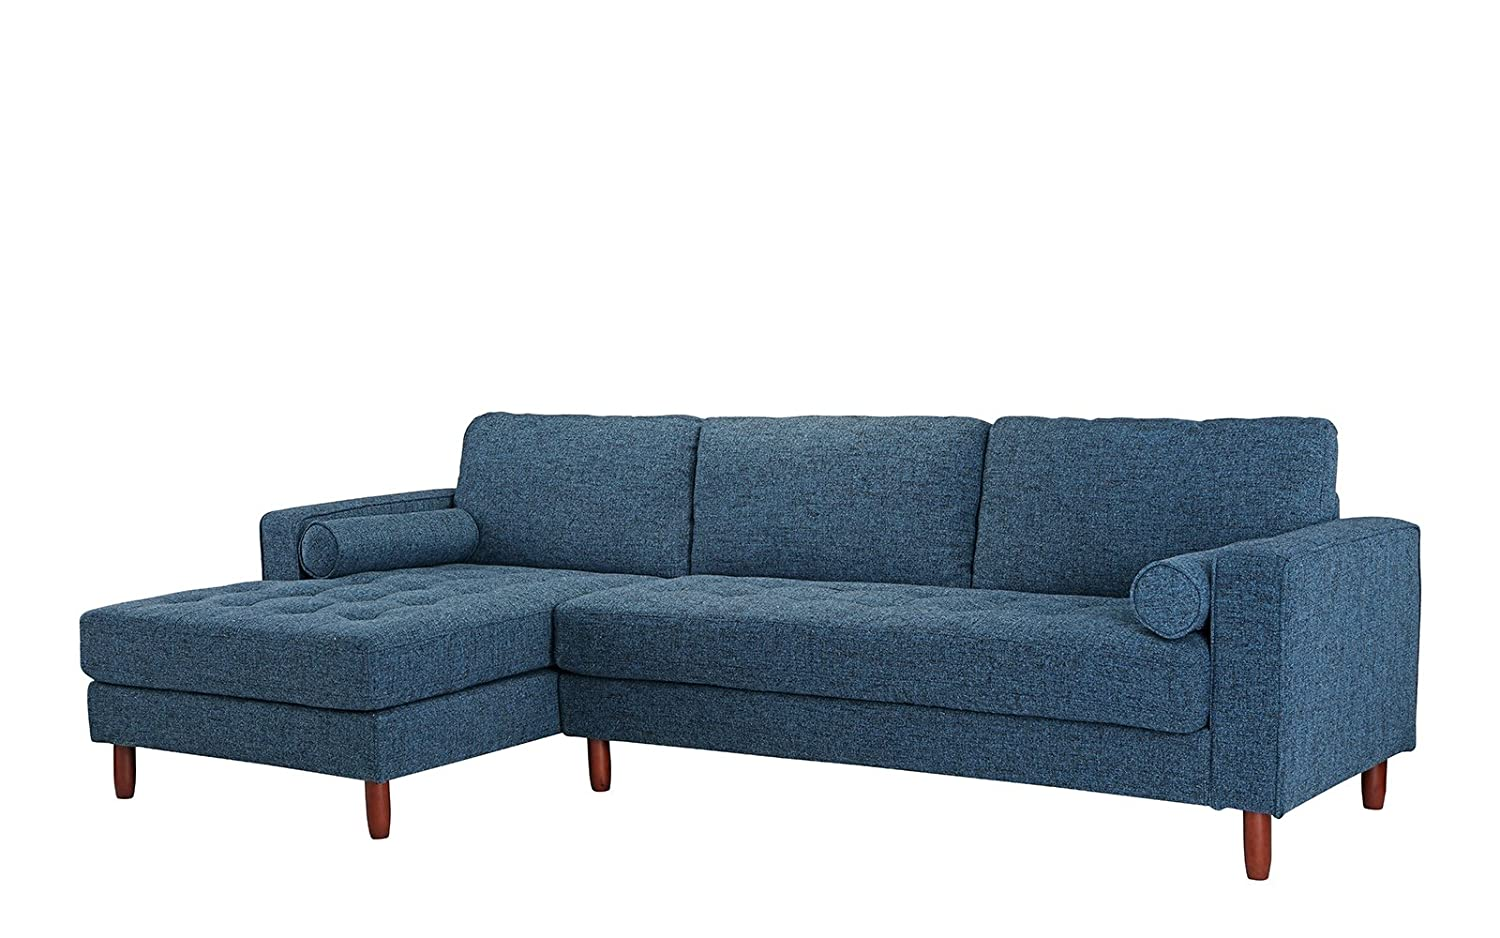 Amazon com divano roma furniture mid century modern tufted fabric sectional sofa l shape couch with extra wide chaise lounge dark blue kitchen dining